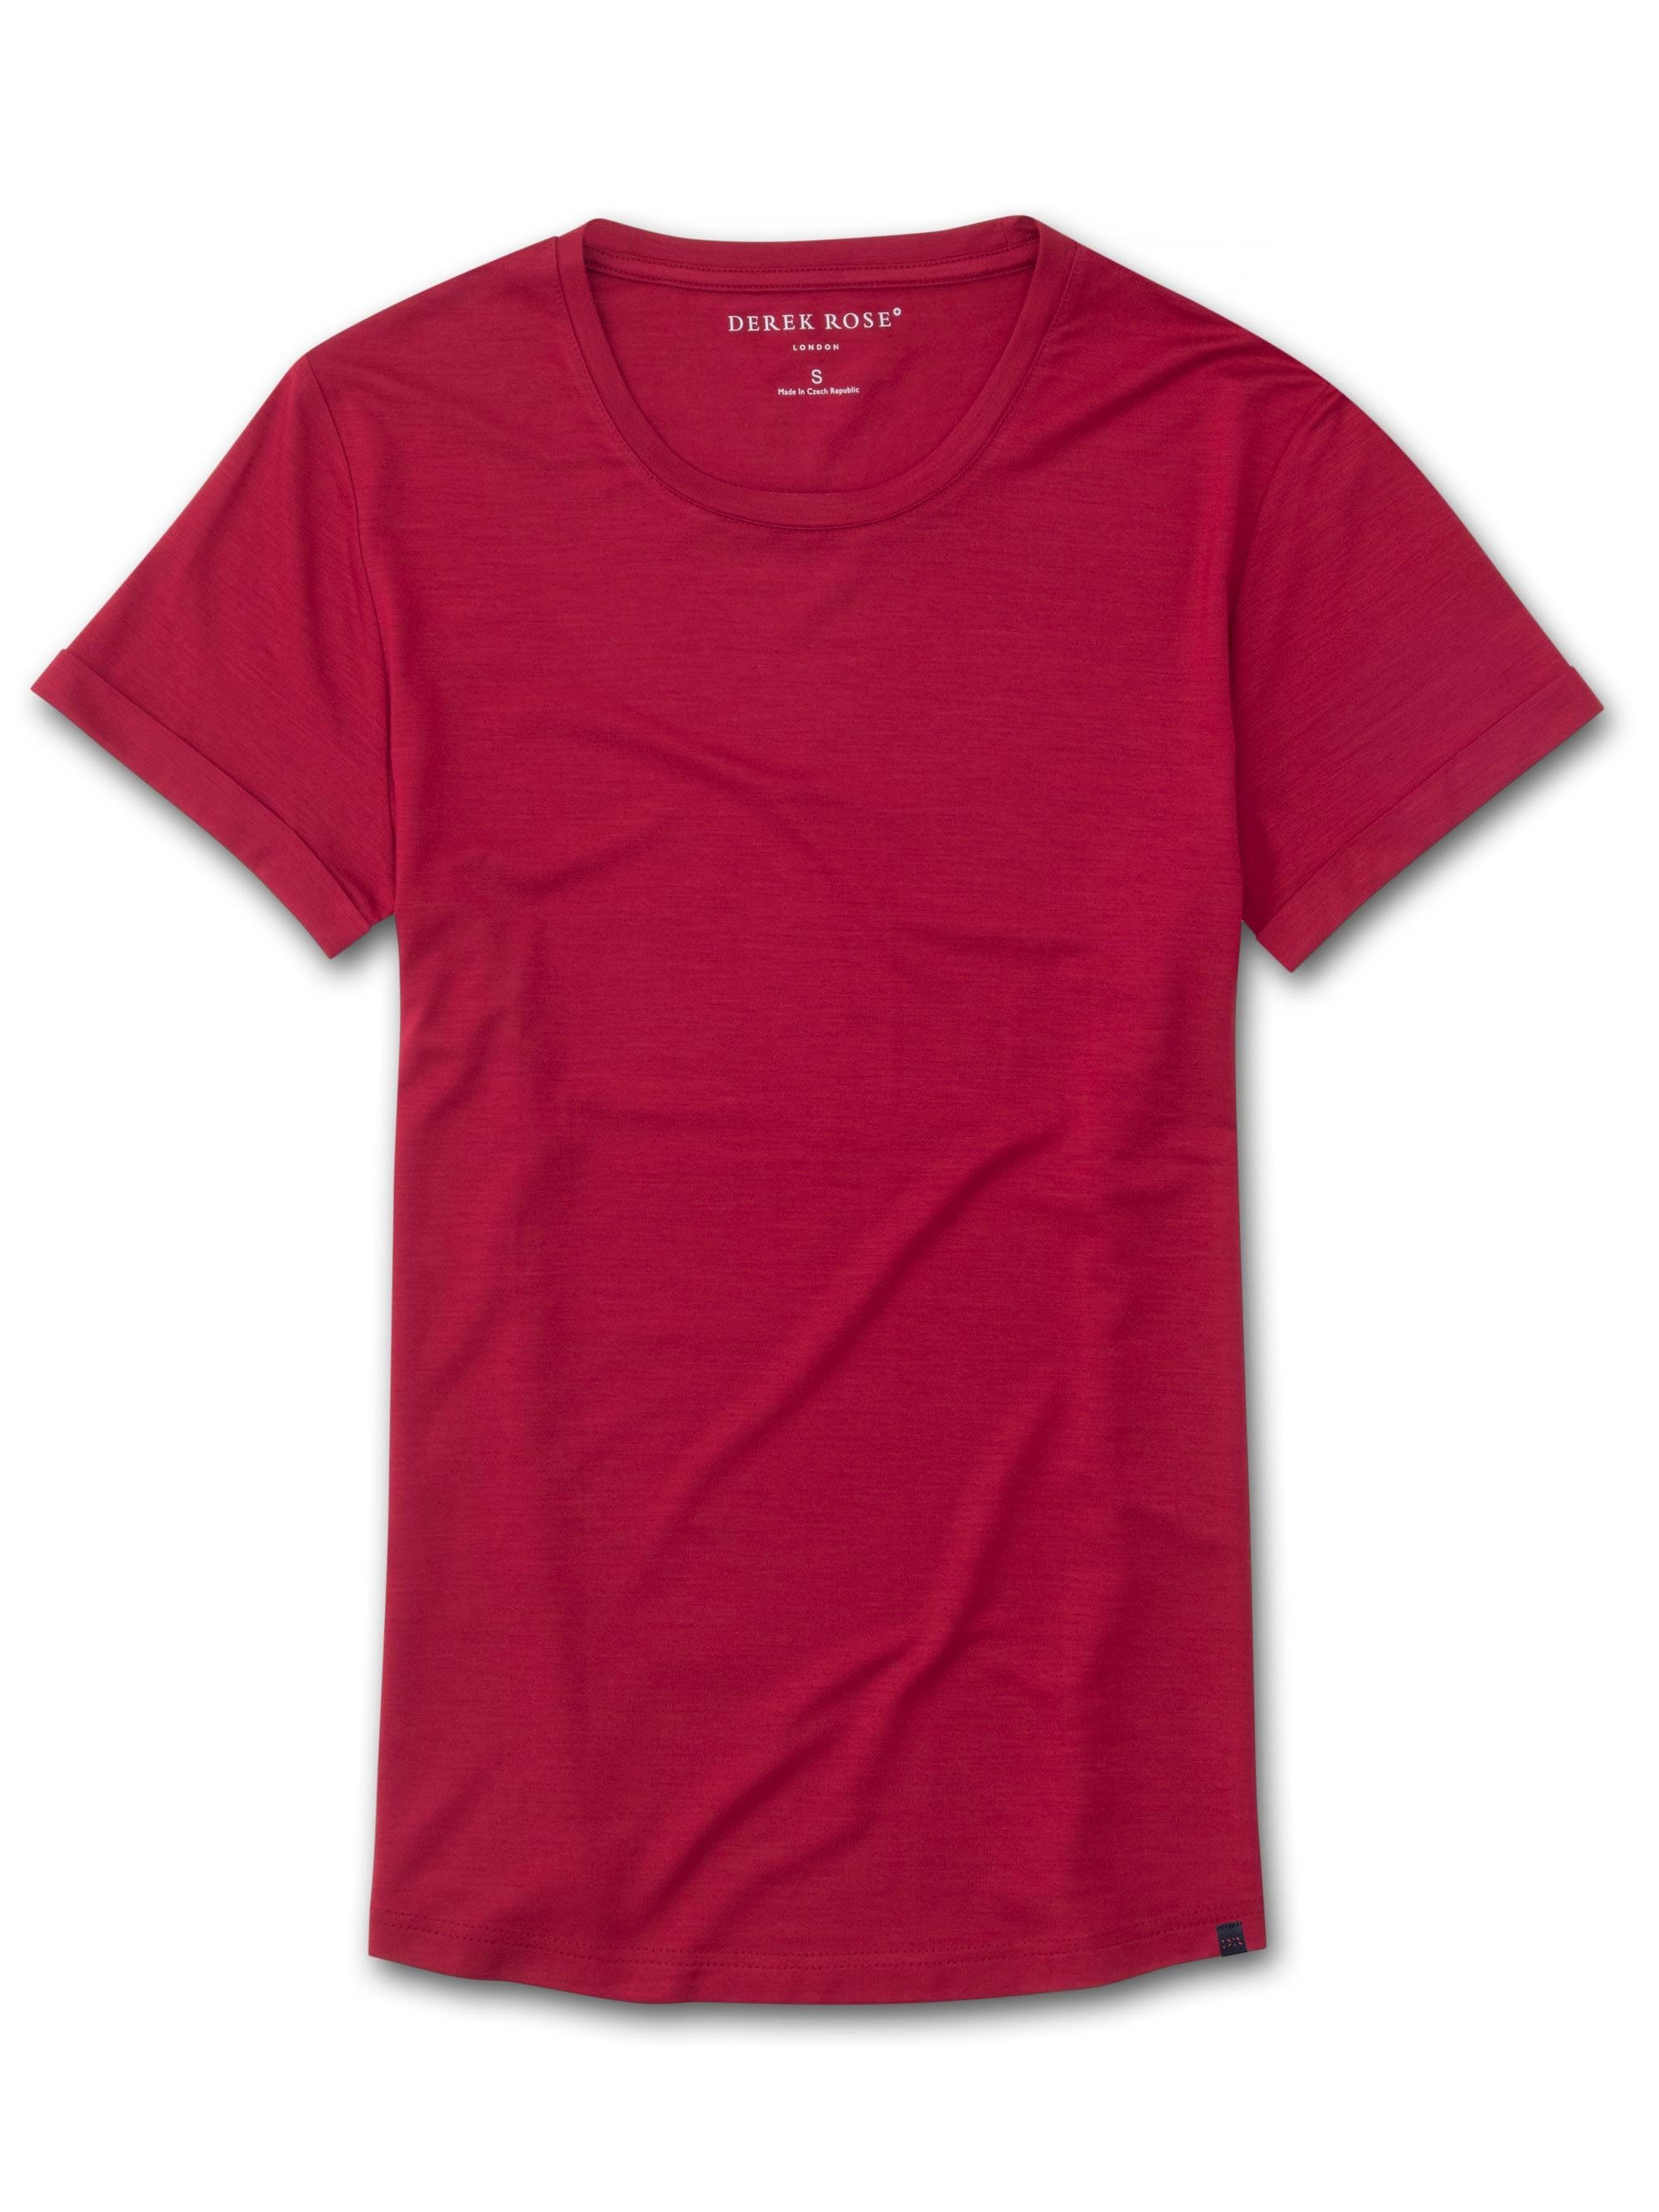 Women's Leisure T-Shirt Lara Micro Modal Stretch Crimson